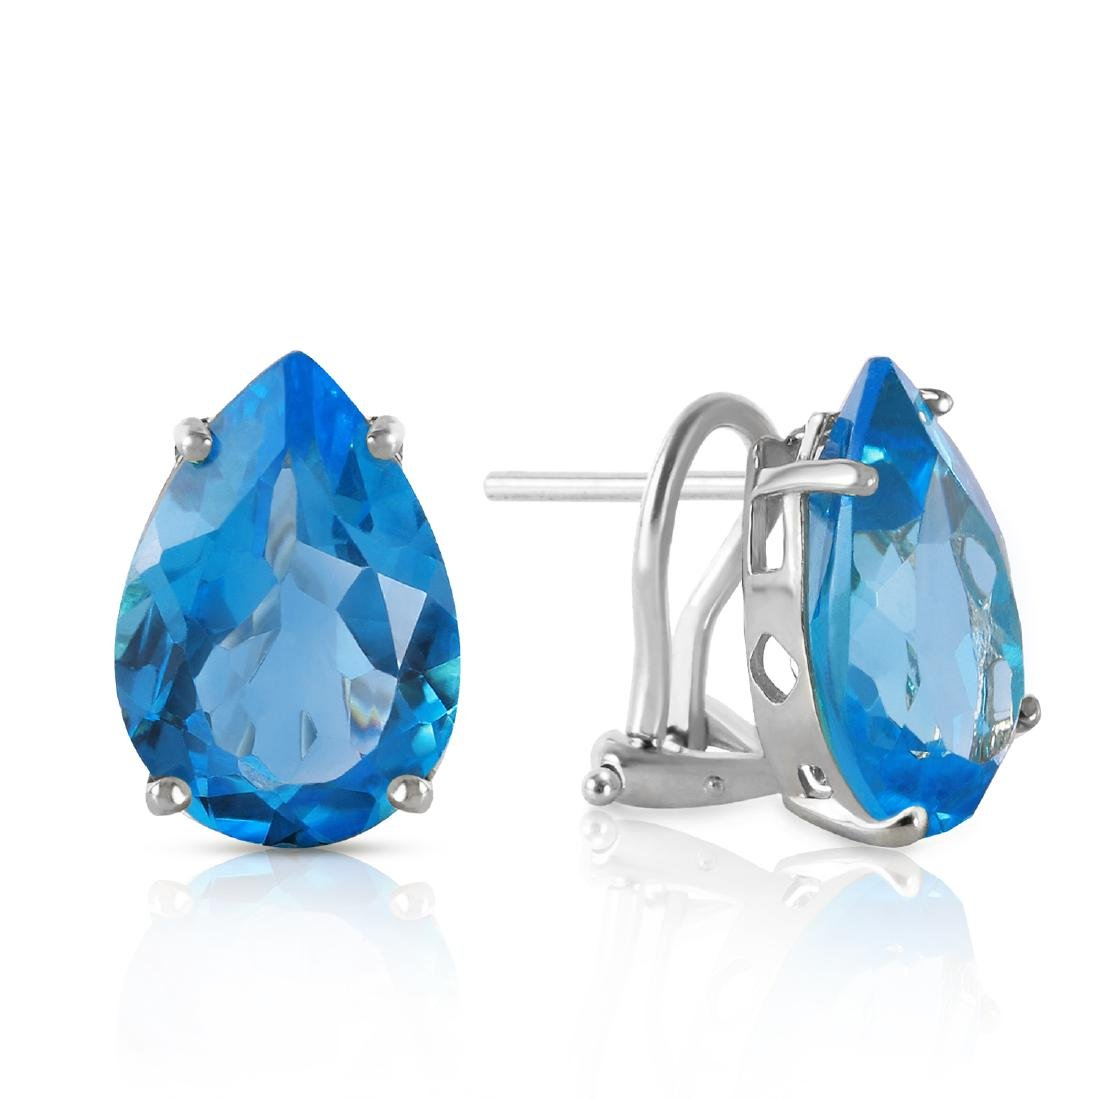 Genuine 10 ctw Blue Topaz Earrings Jewelry 14KT White